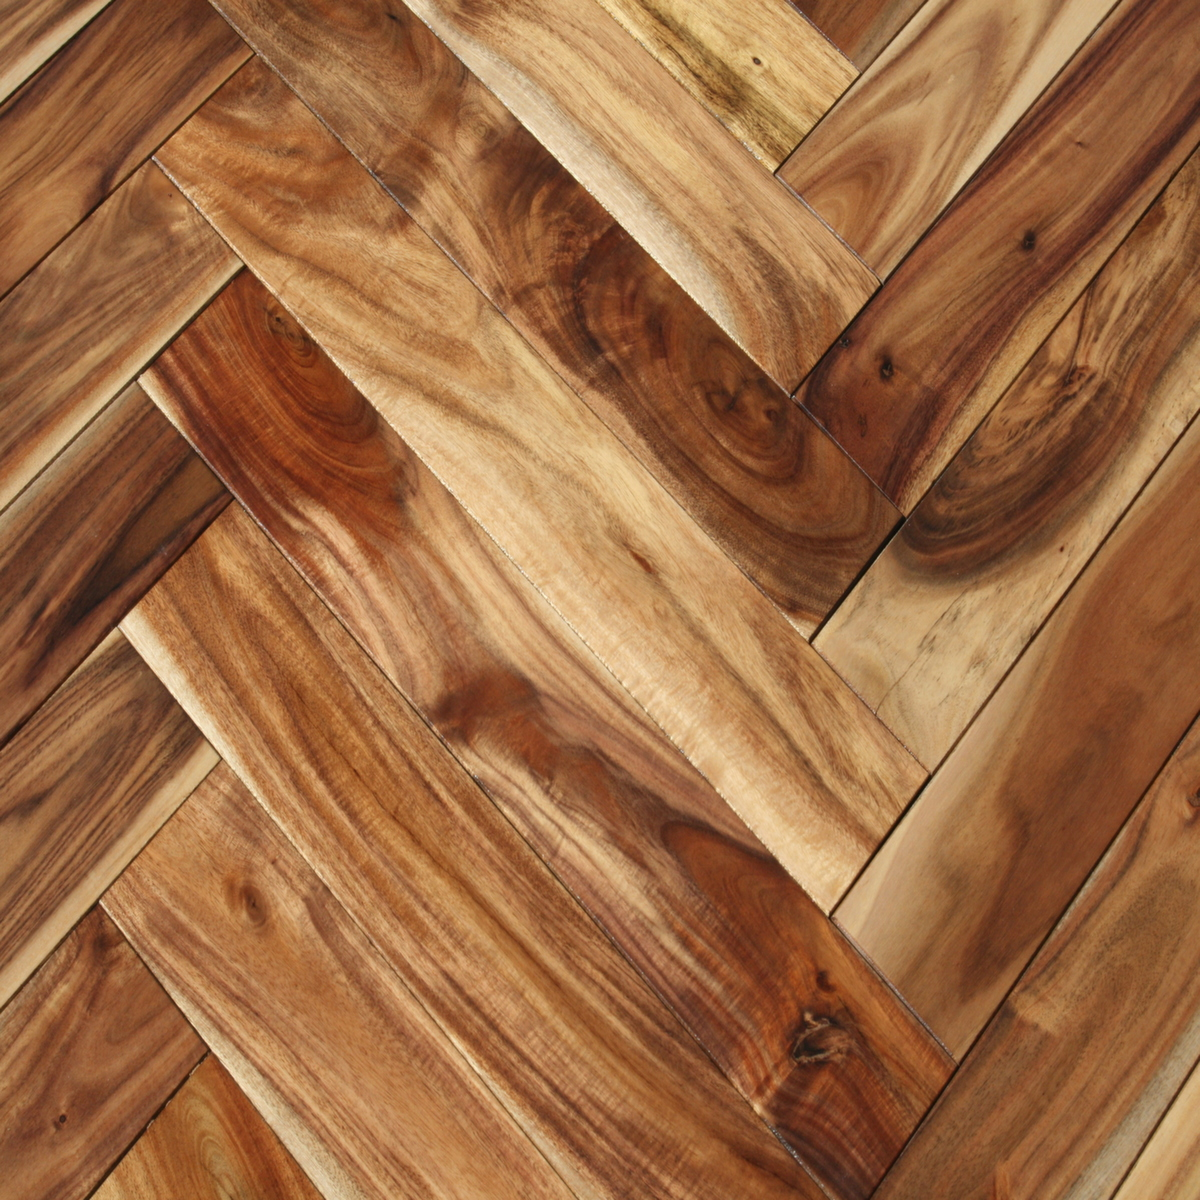 Acacia natural herringbone hardwood flooring unique wood for Which floor or what floor